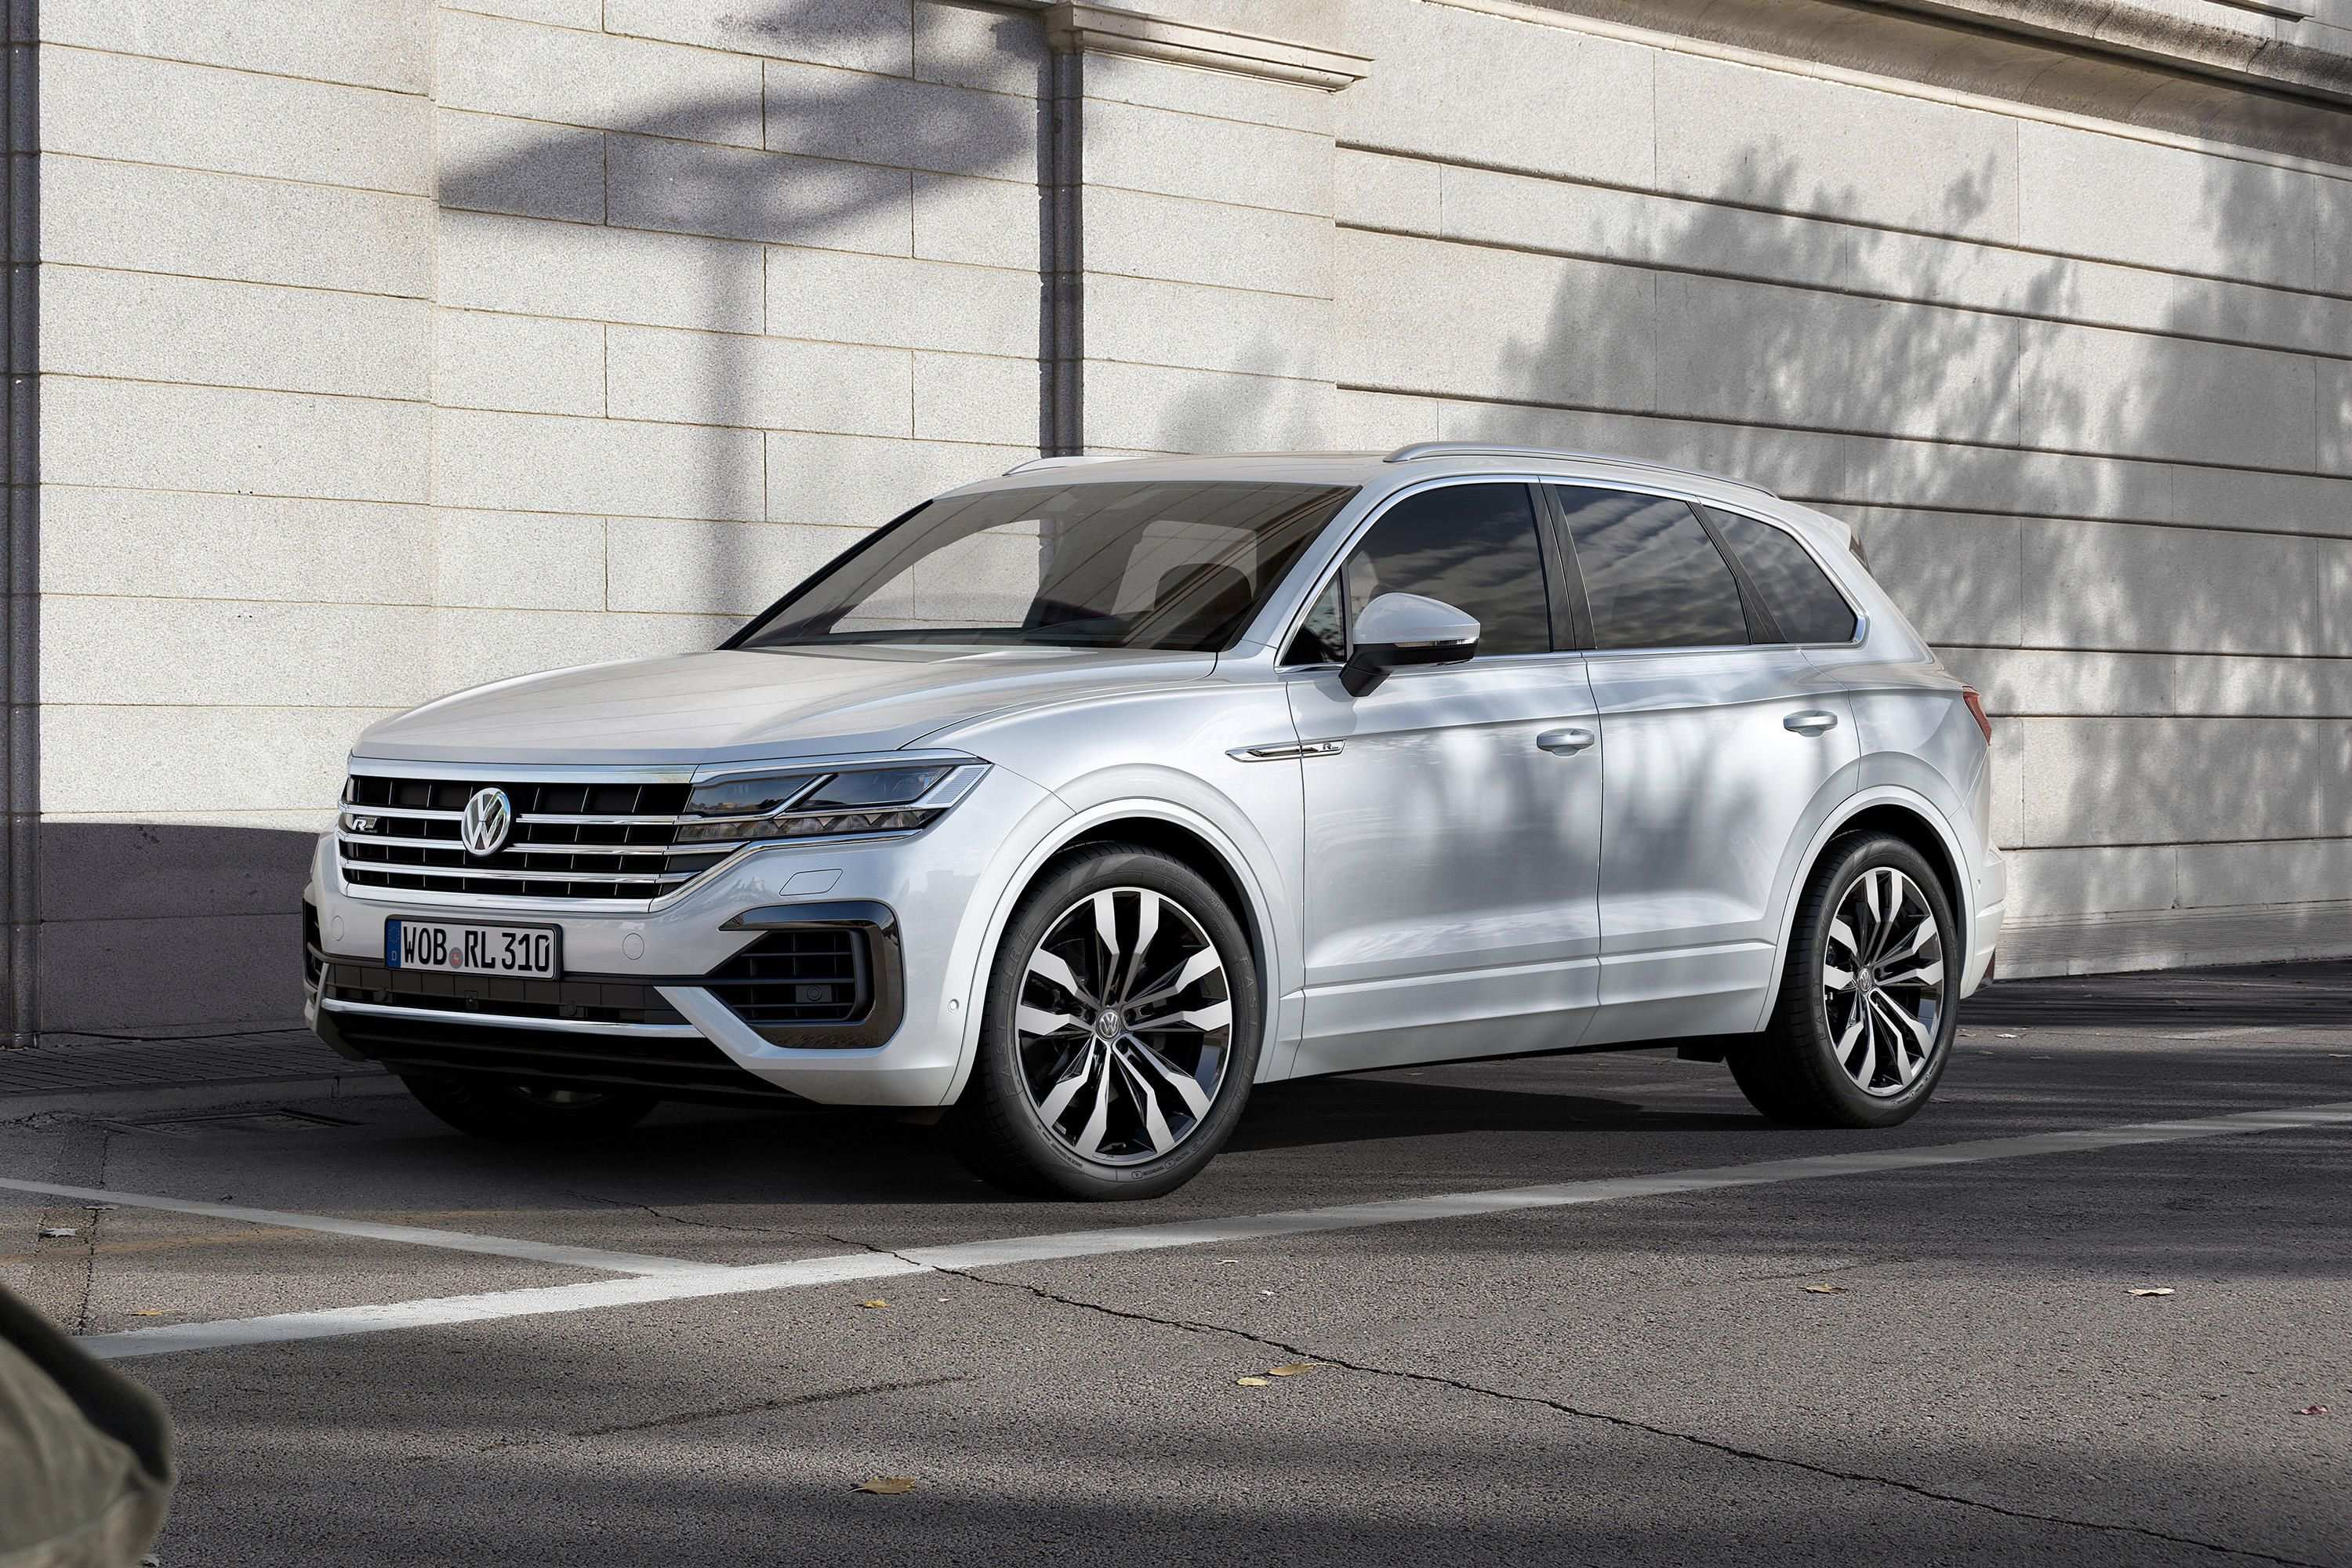 57 All New 2019 Vw Touareg Configurations with 2019 Vw Touareg